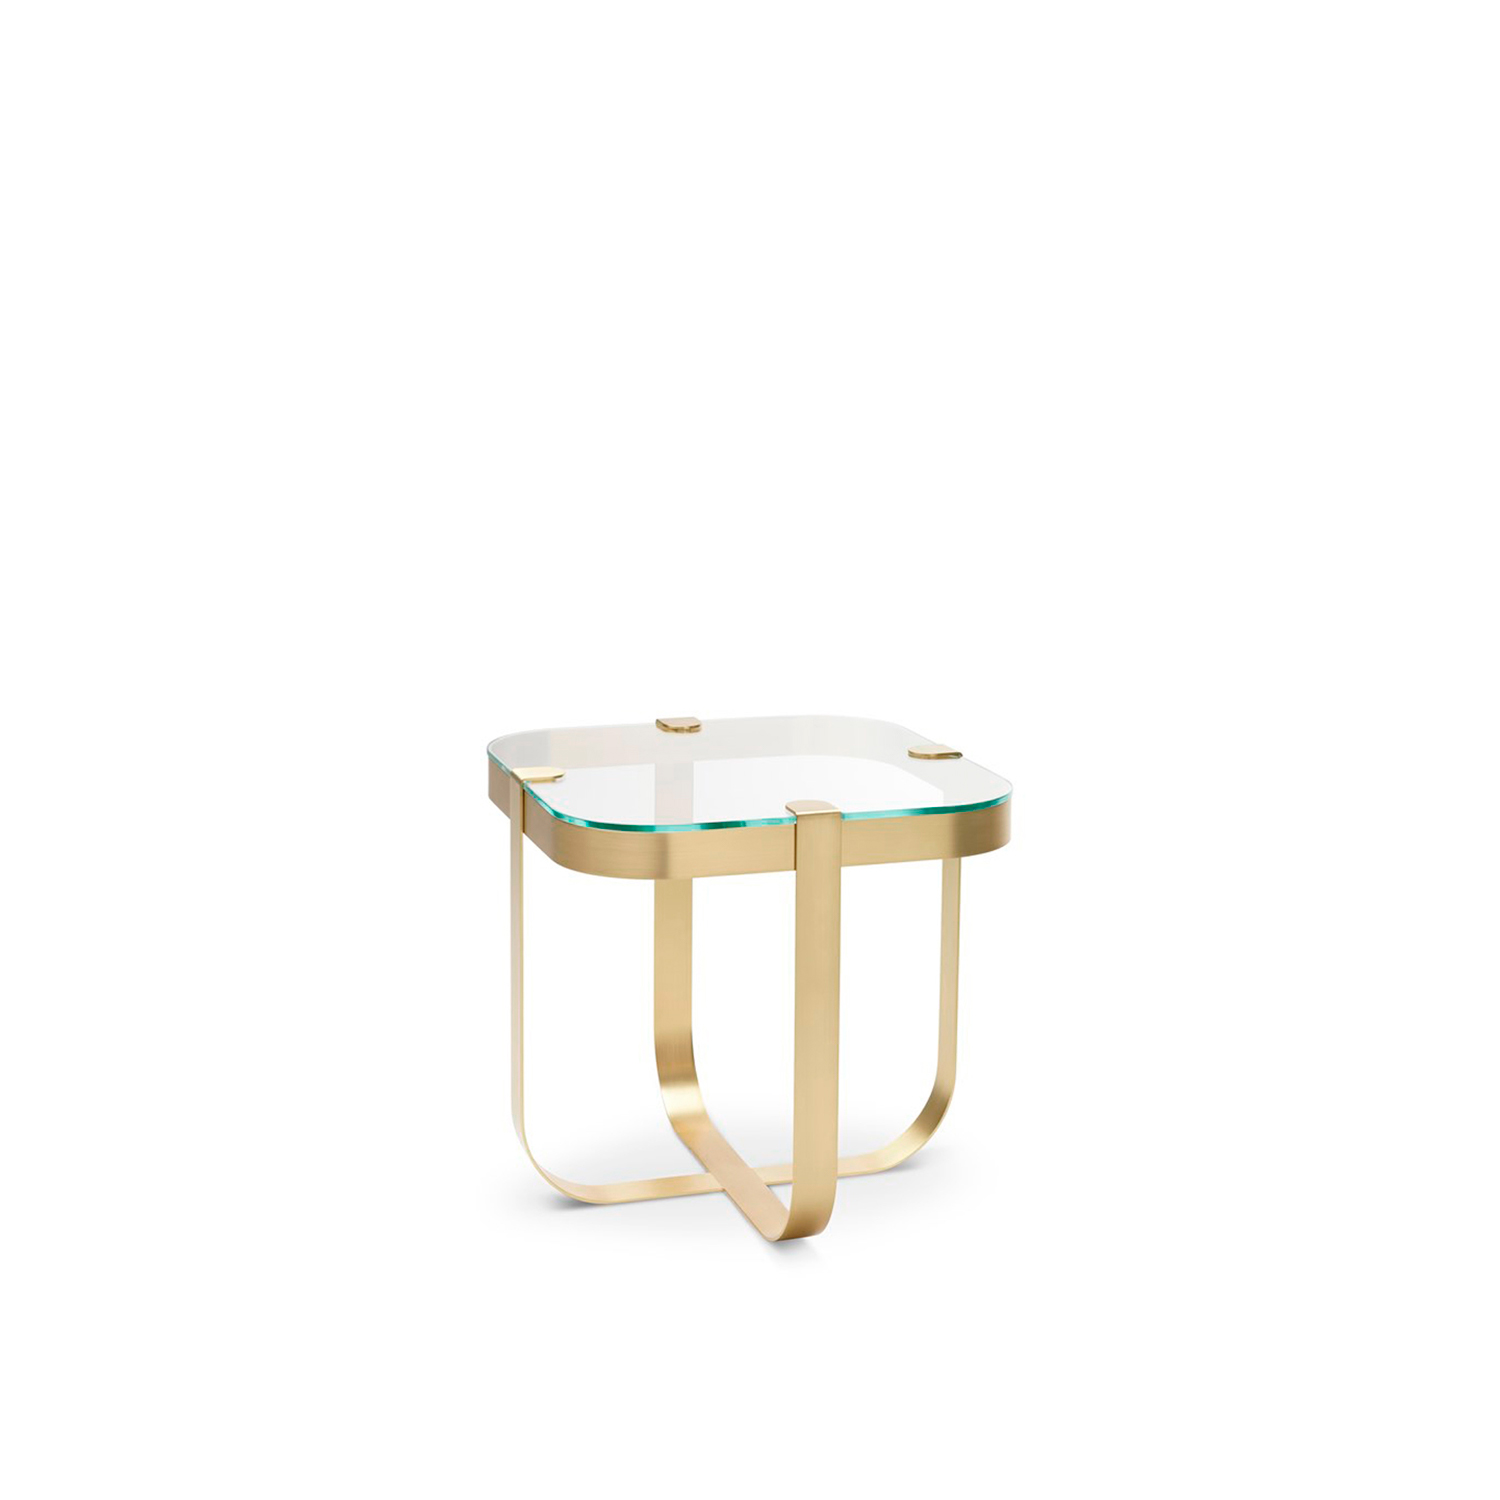 Ring Square Coffee Table - Elegant like jewellery, the Ring coffee tables are inspired by raw cuts of precious stones prior to being mounted into rings.‎ The choice of materials is aimed to emphasise this inspiration behind the collection.‎ The metal base structures are available in copper, brass, steel and nickel, each of which corresponds to a geometric form.‎ Like in jewellery design, the glass tops in transparent or light colours are literally set onto the base structures.‎